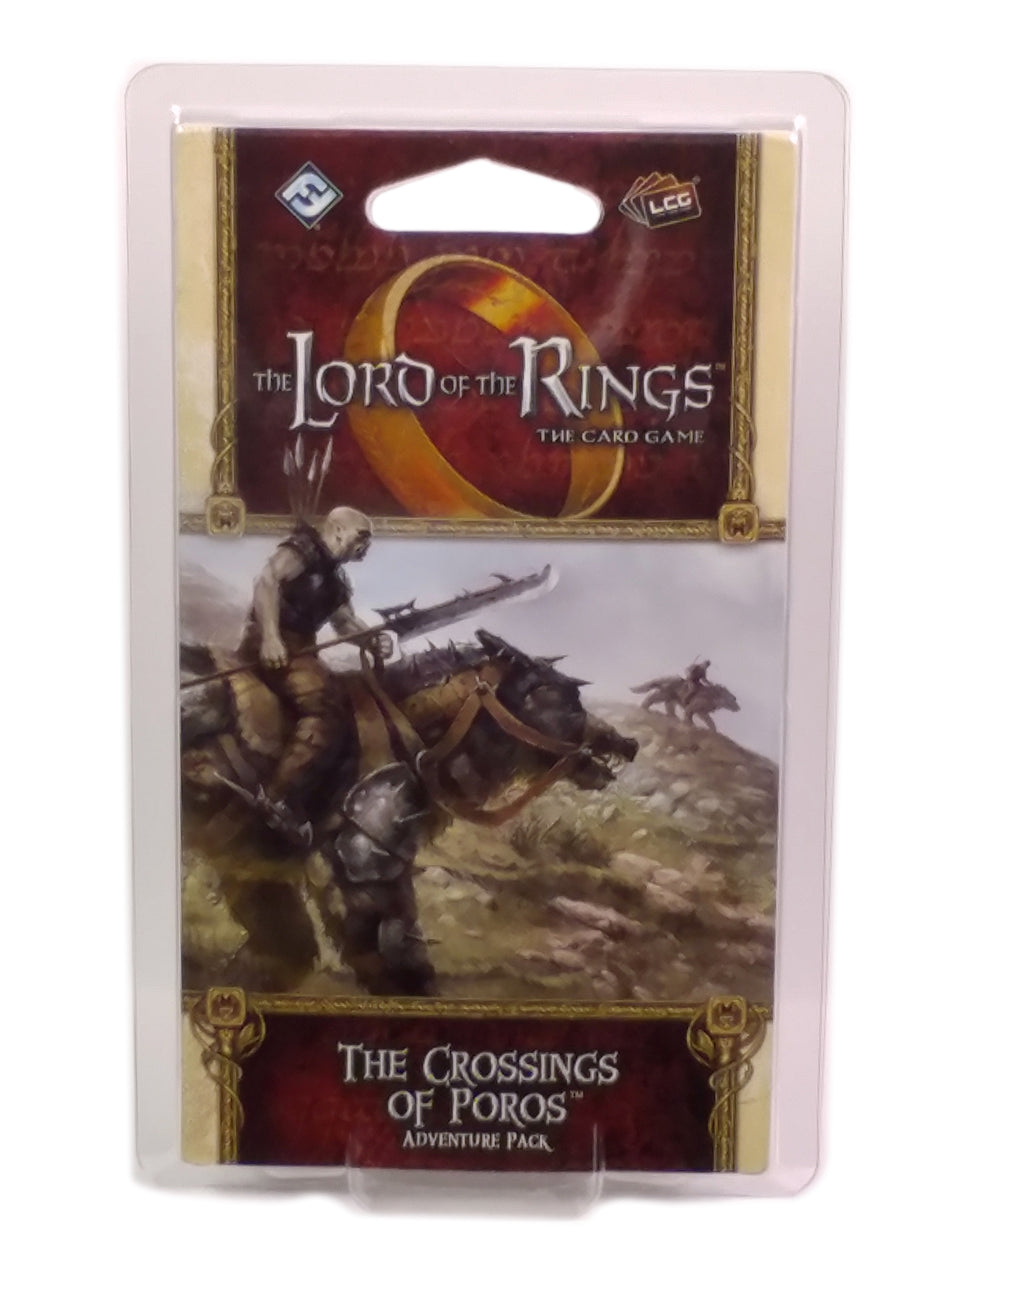 Lord of the Rings LCG, The Crossings of Poros Adventure pack